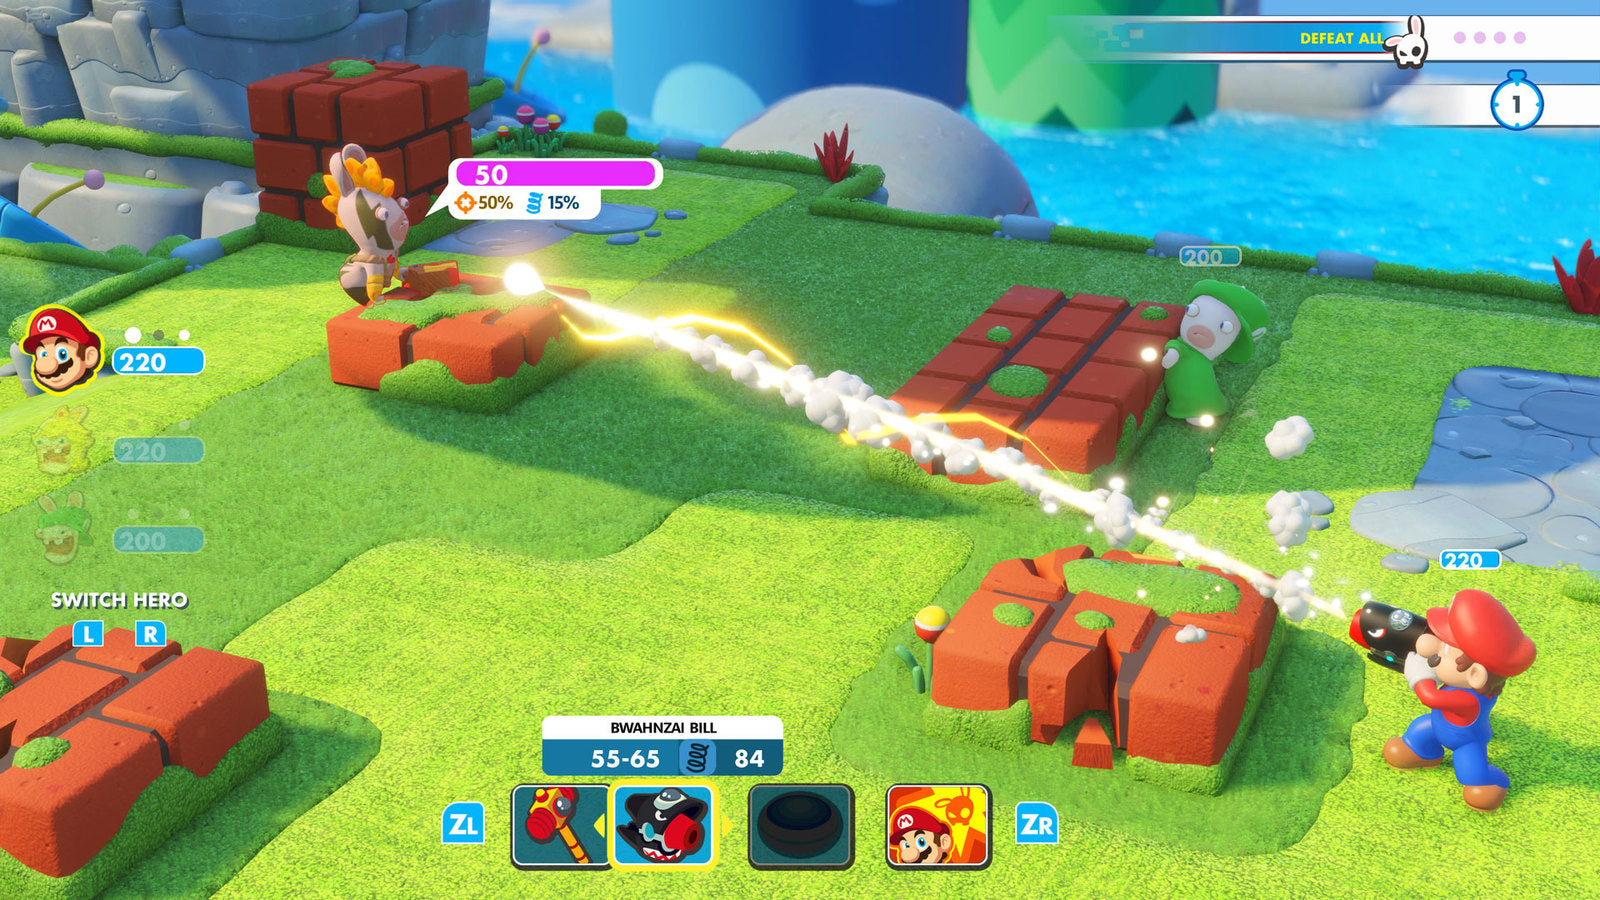 Mario + Rabbids: Kingdom Battle - Nintendo Switch